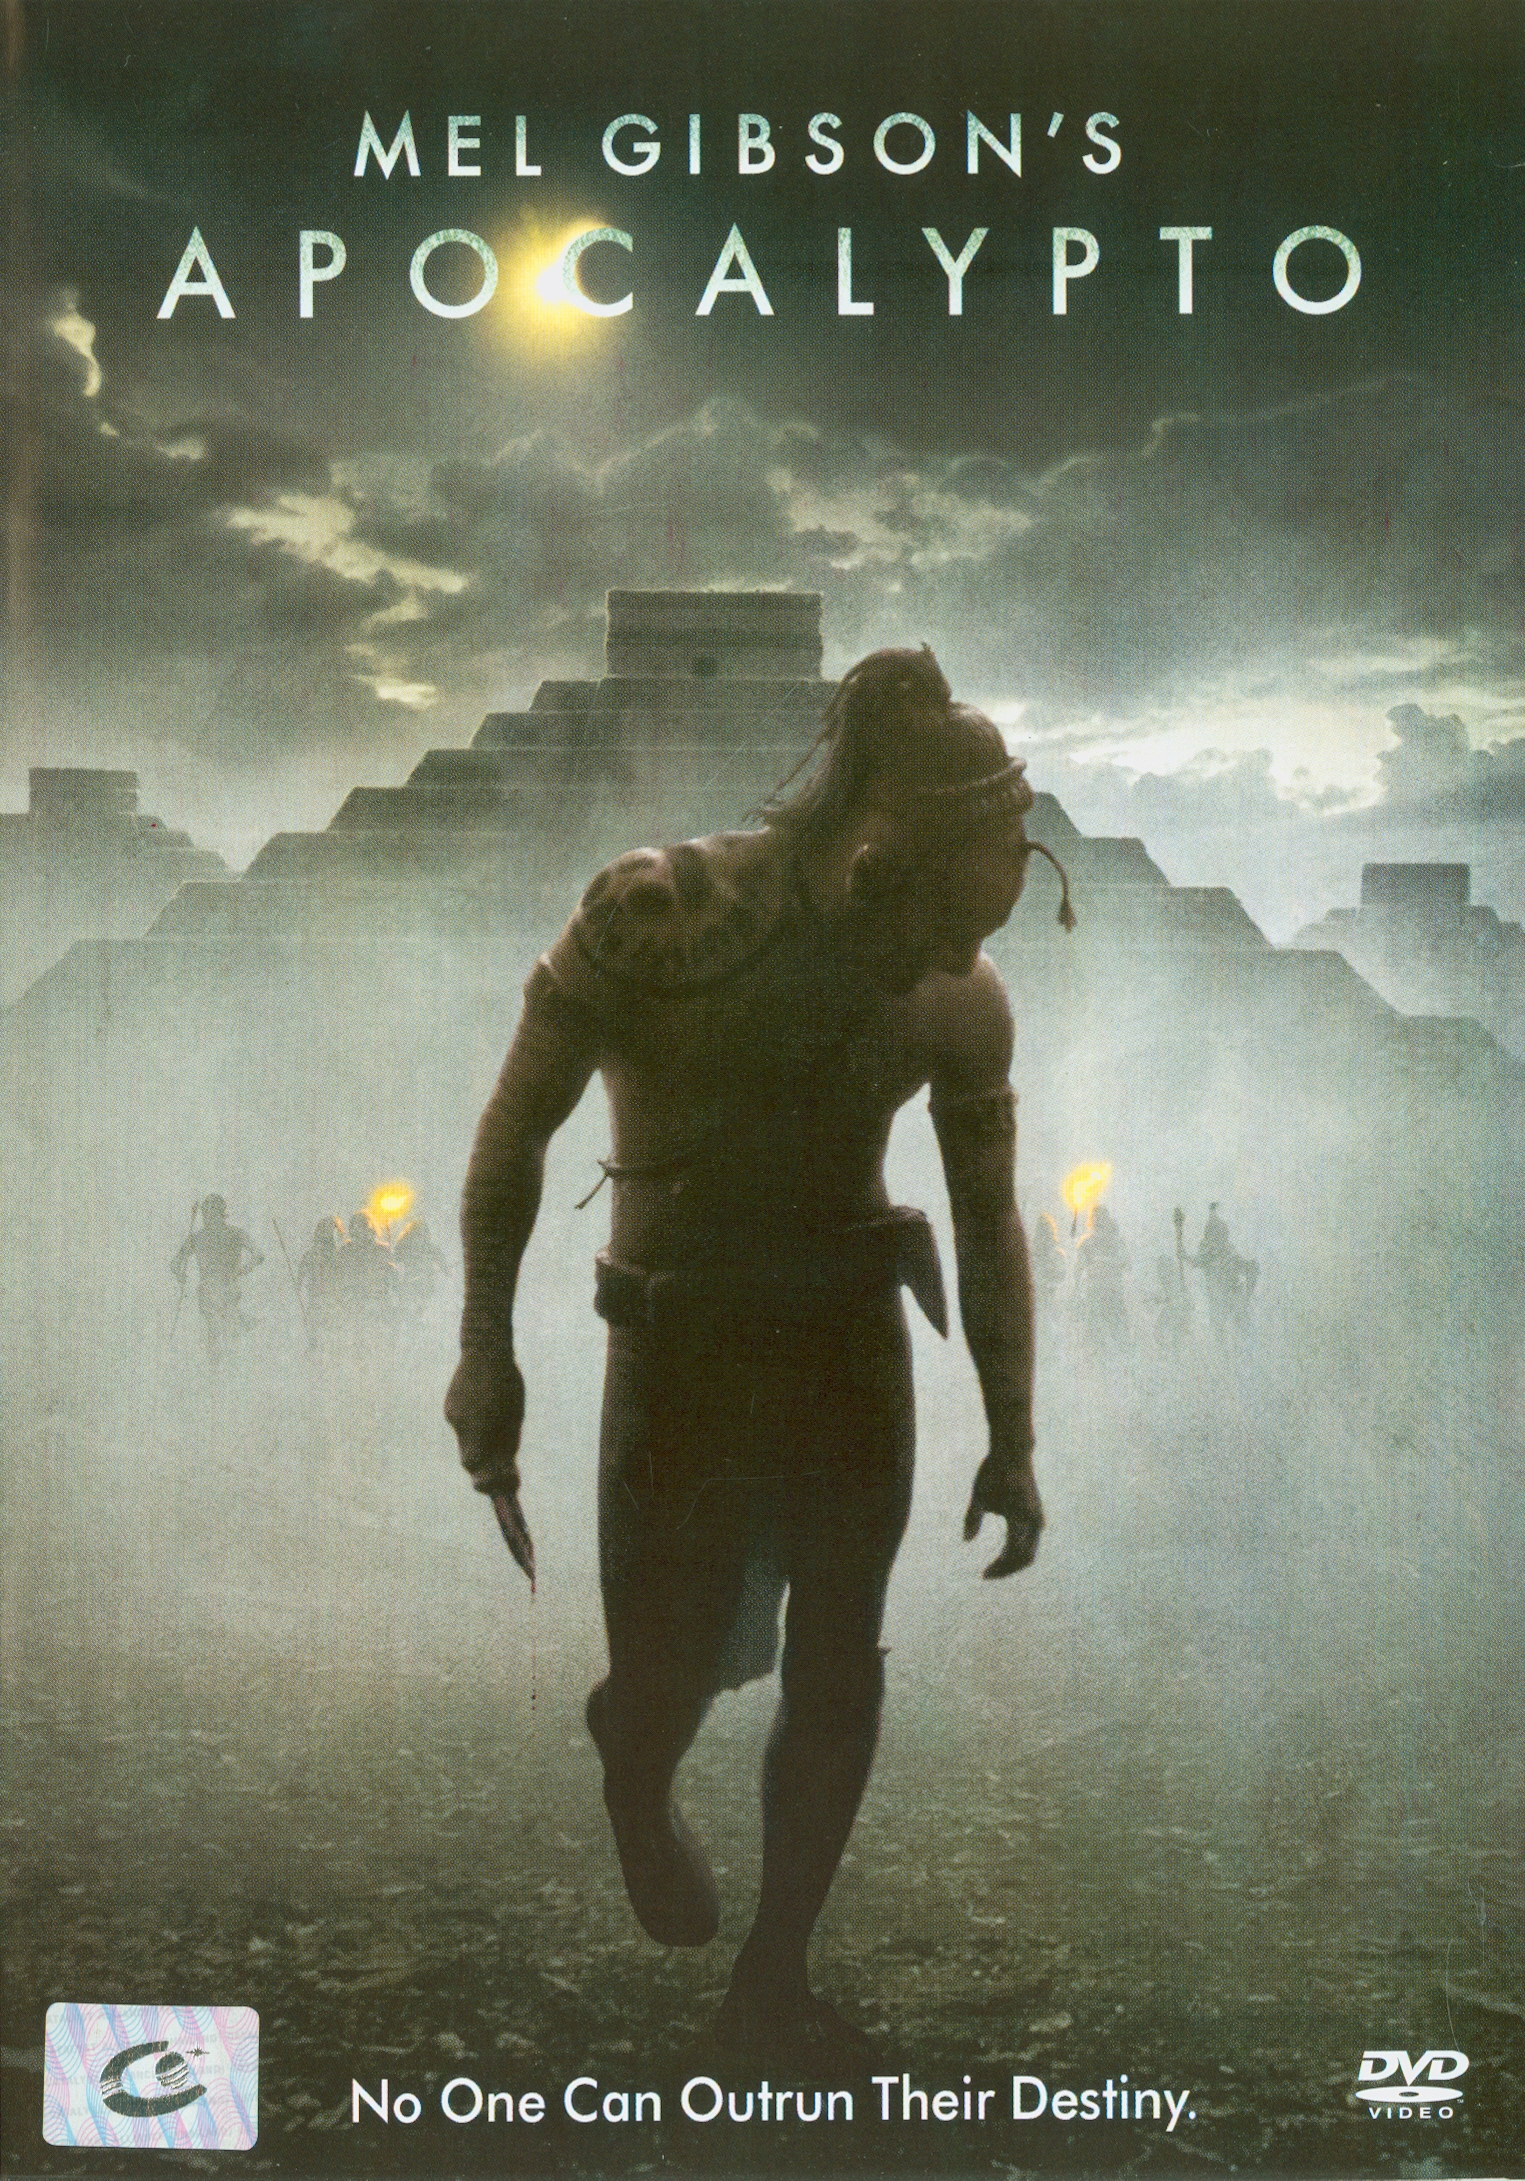 Apocalypto[videorecording] /Touchstone Pictures presents in association with Icon Productions, an Icon production ; a Mel Gibson Film ; directed by Mel Gibson ; written by Mel Gibson & Farhad Safinia ; produced by Mel Gibson, Bruce Davey||Mel Gibson's Apocalypto